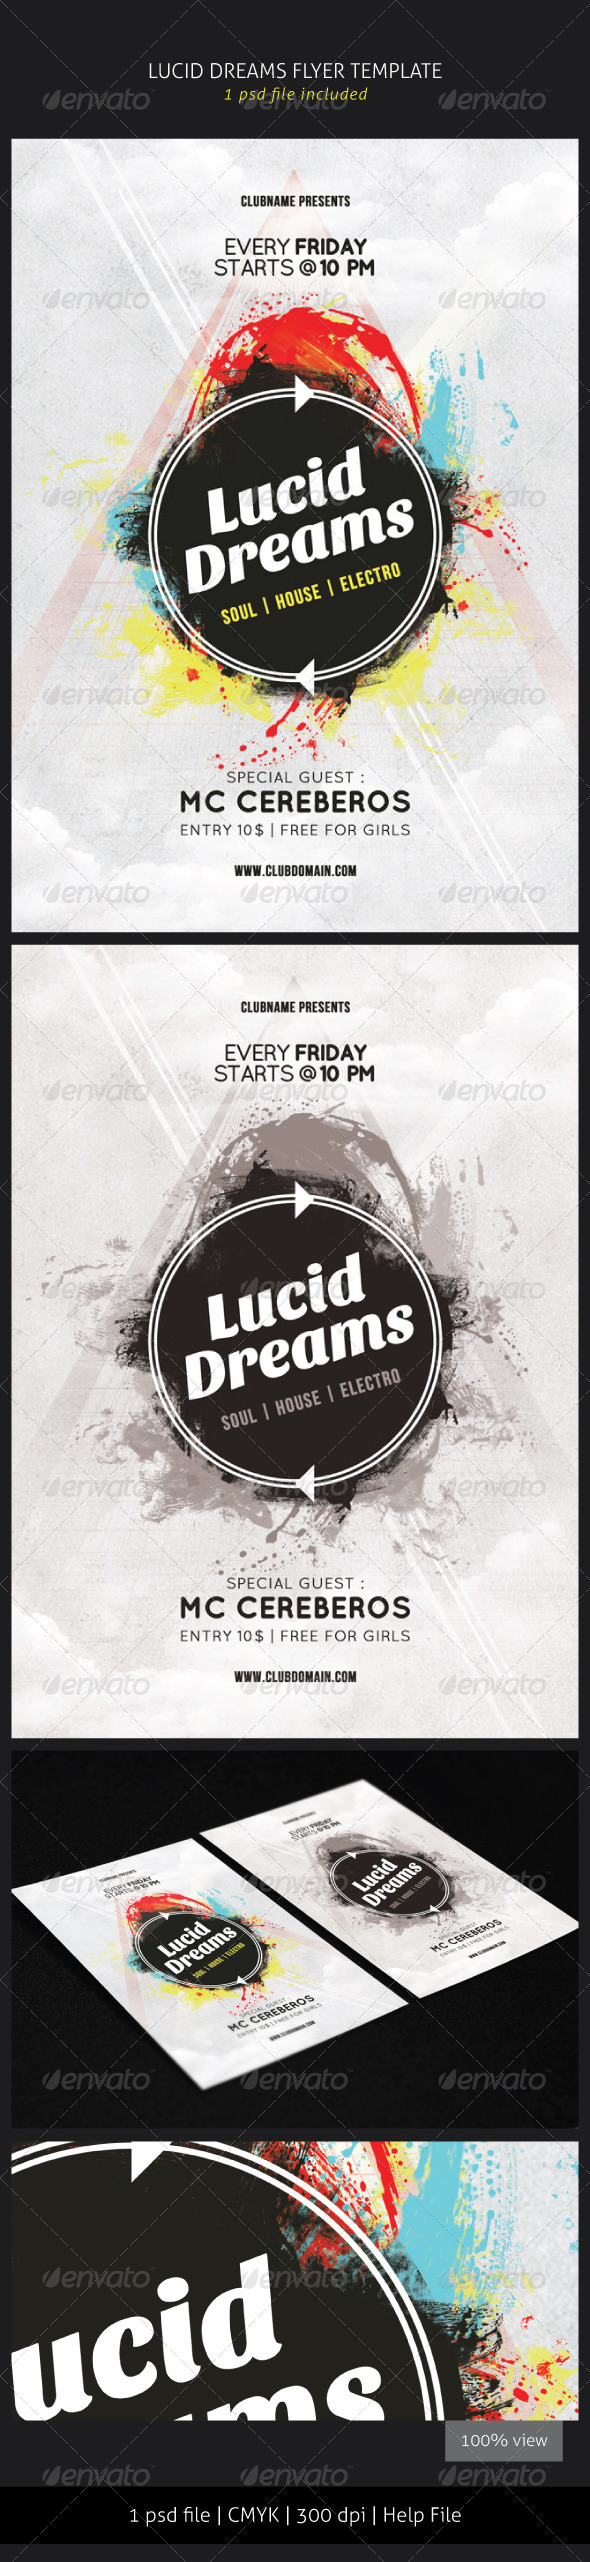 GraphicRiver Lucid Dreams Flyer Template 5728055